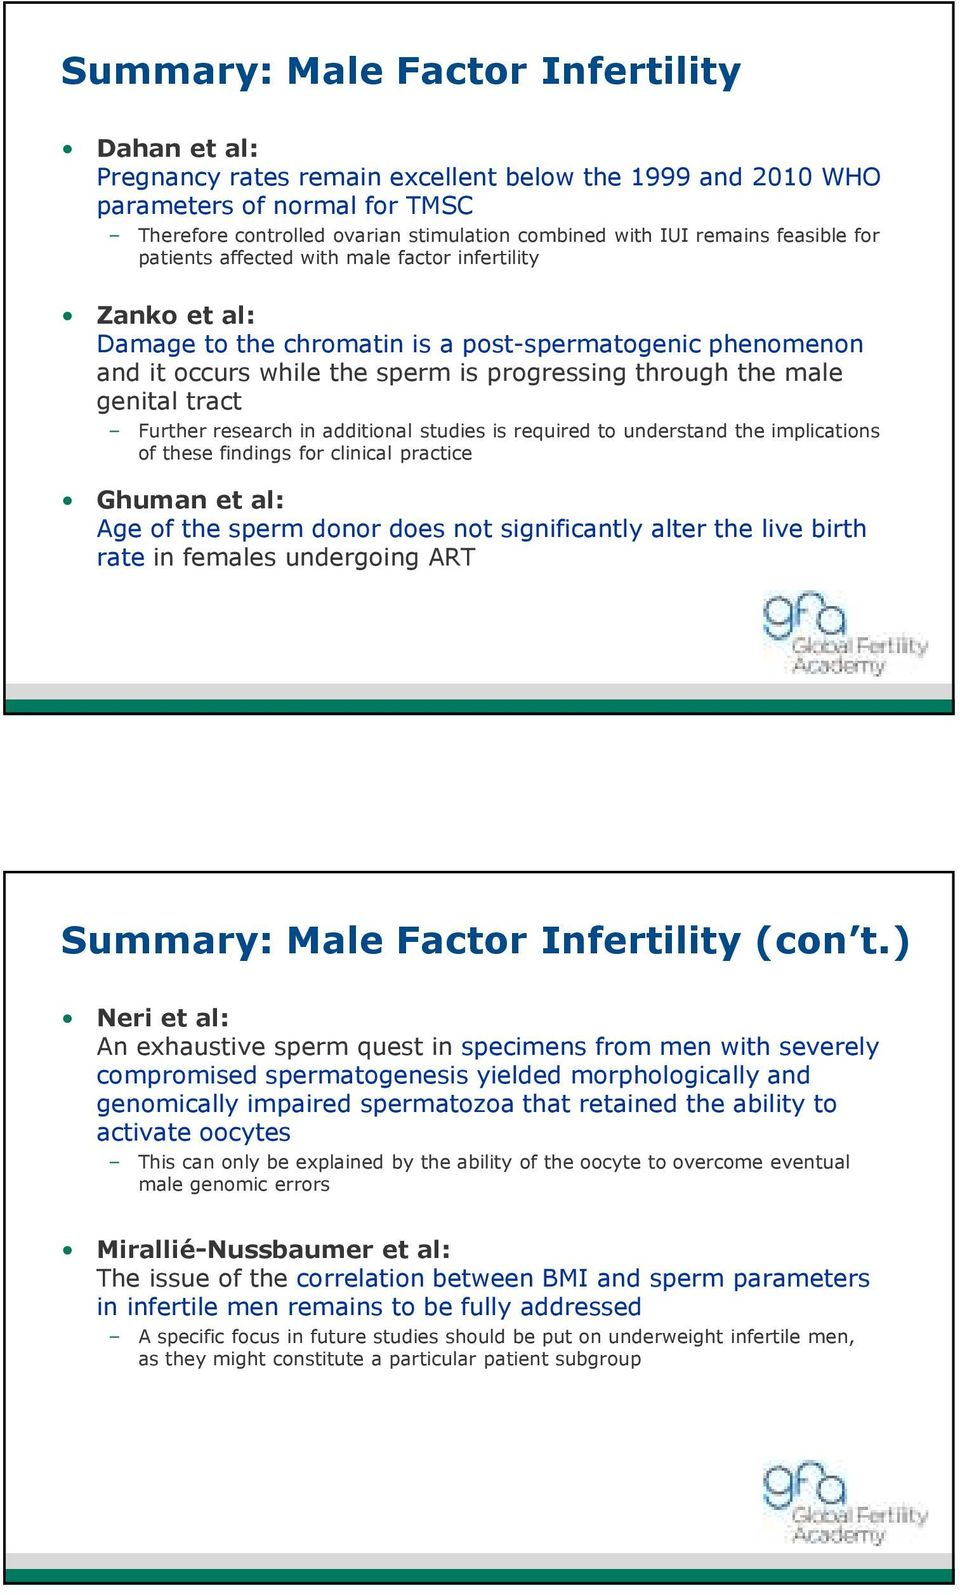 male genital tract Further research in additional studies is required to understand the implications of these findings for clinical practice Ghuman et al: Age of the sperm donor does not